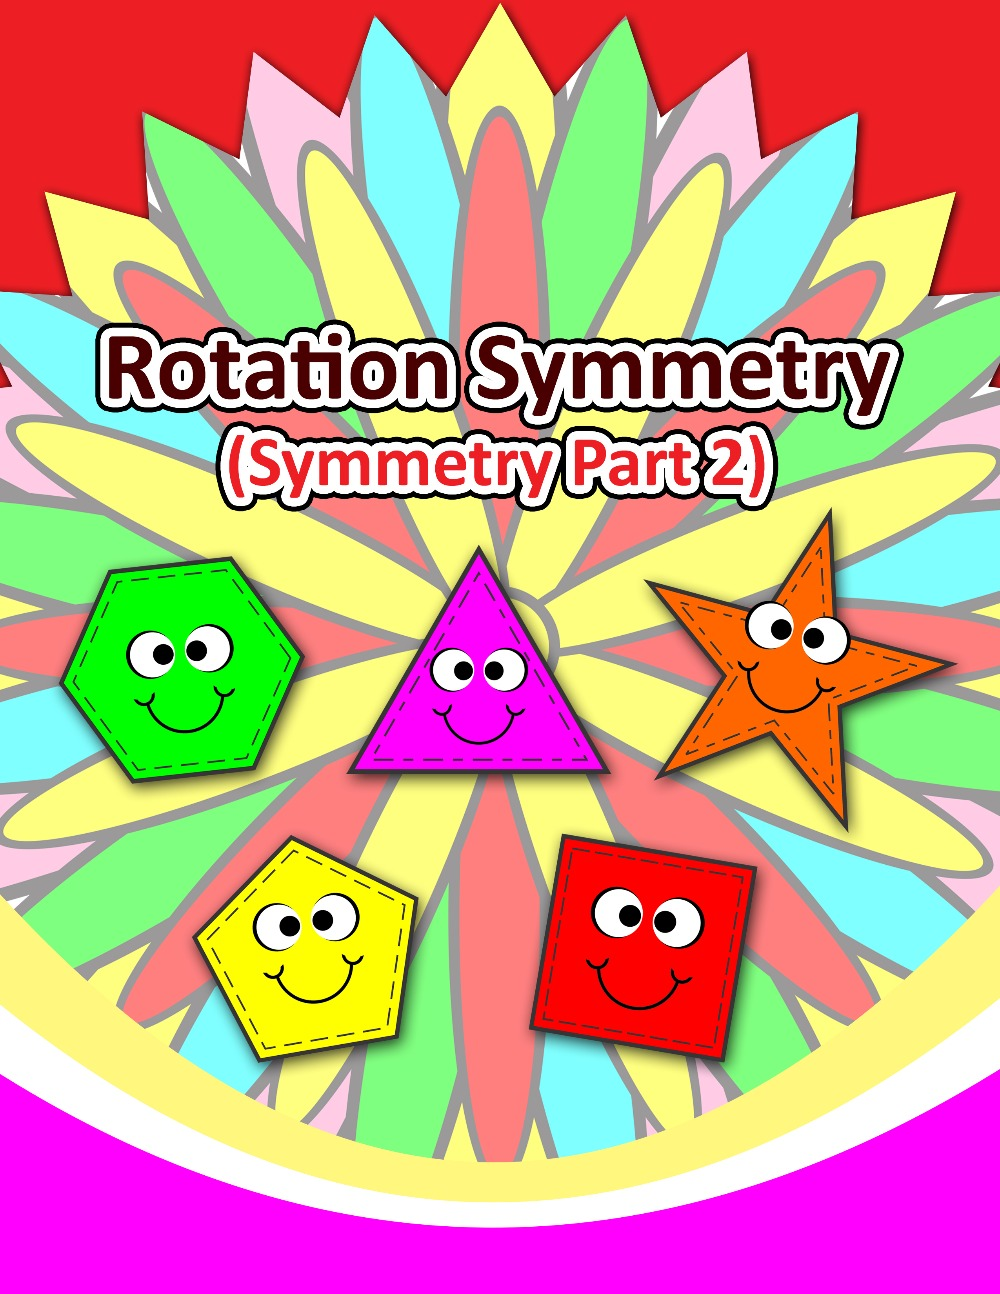 Rotation Symmetry (Symmetry Part 2)